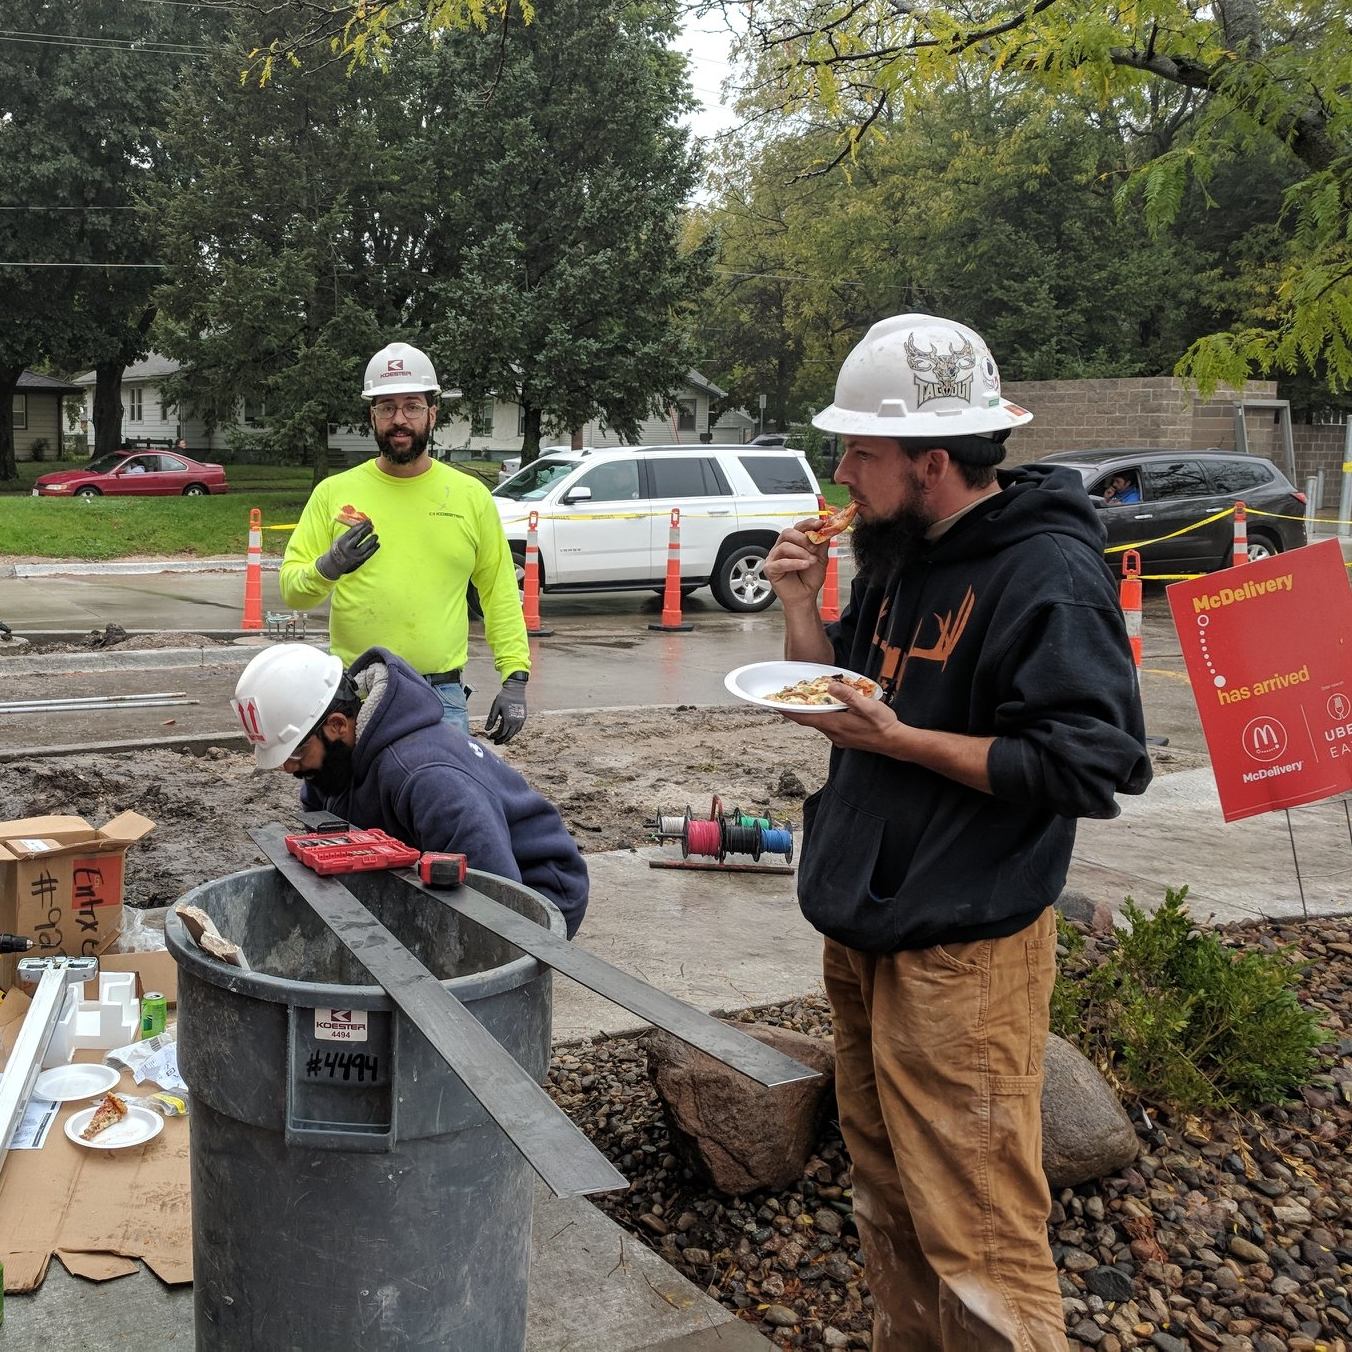 October 5, 2018   Our office delivered pizza to the field everyday this week in honor of #ConstructionWeek18. Happy Construction Week, everyone!